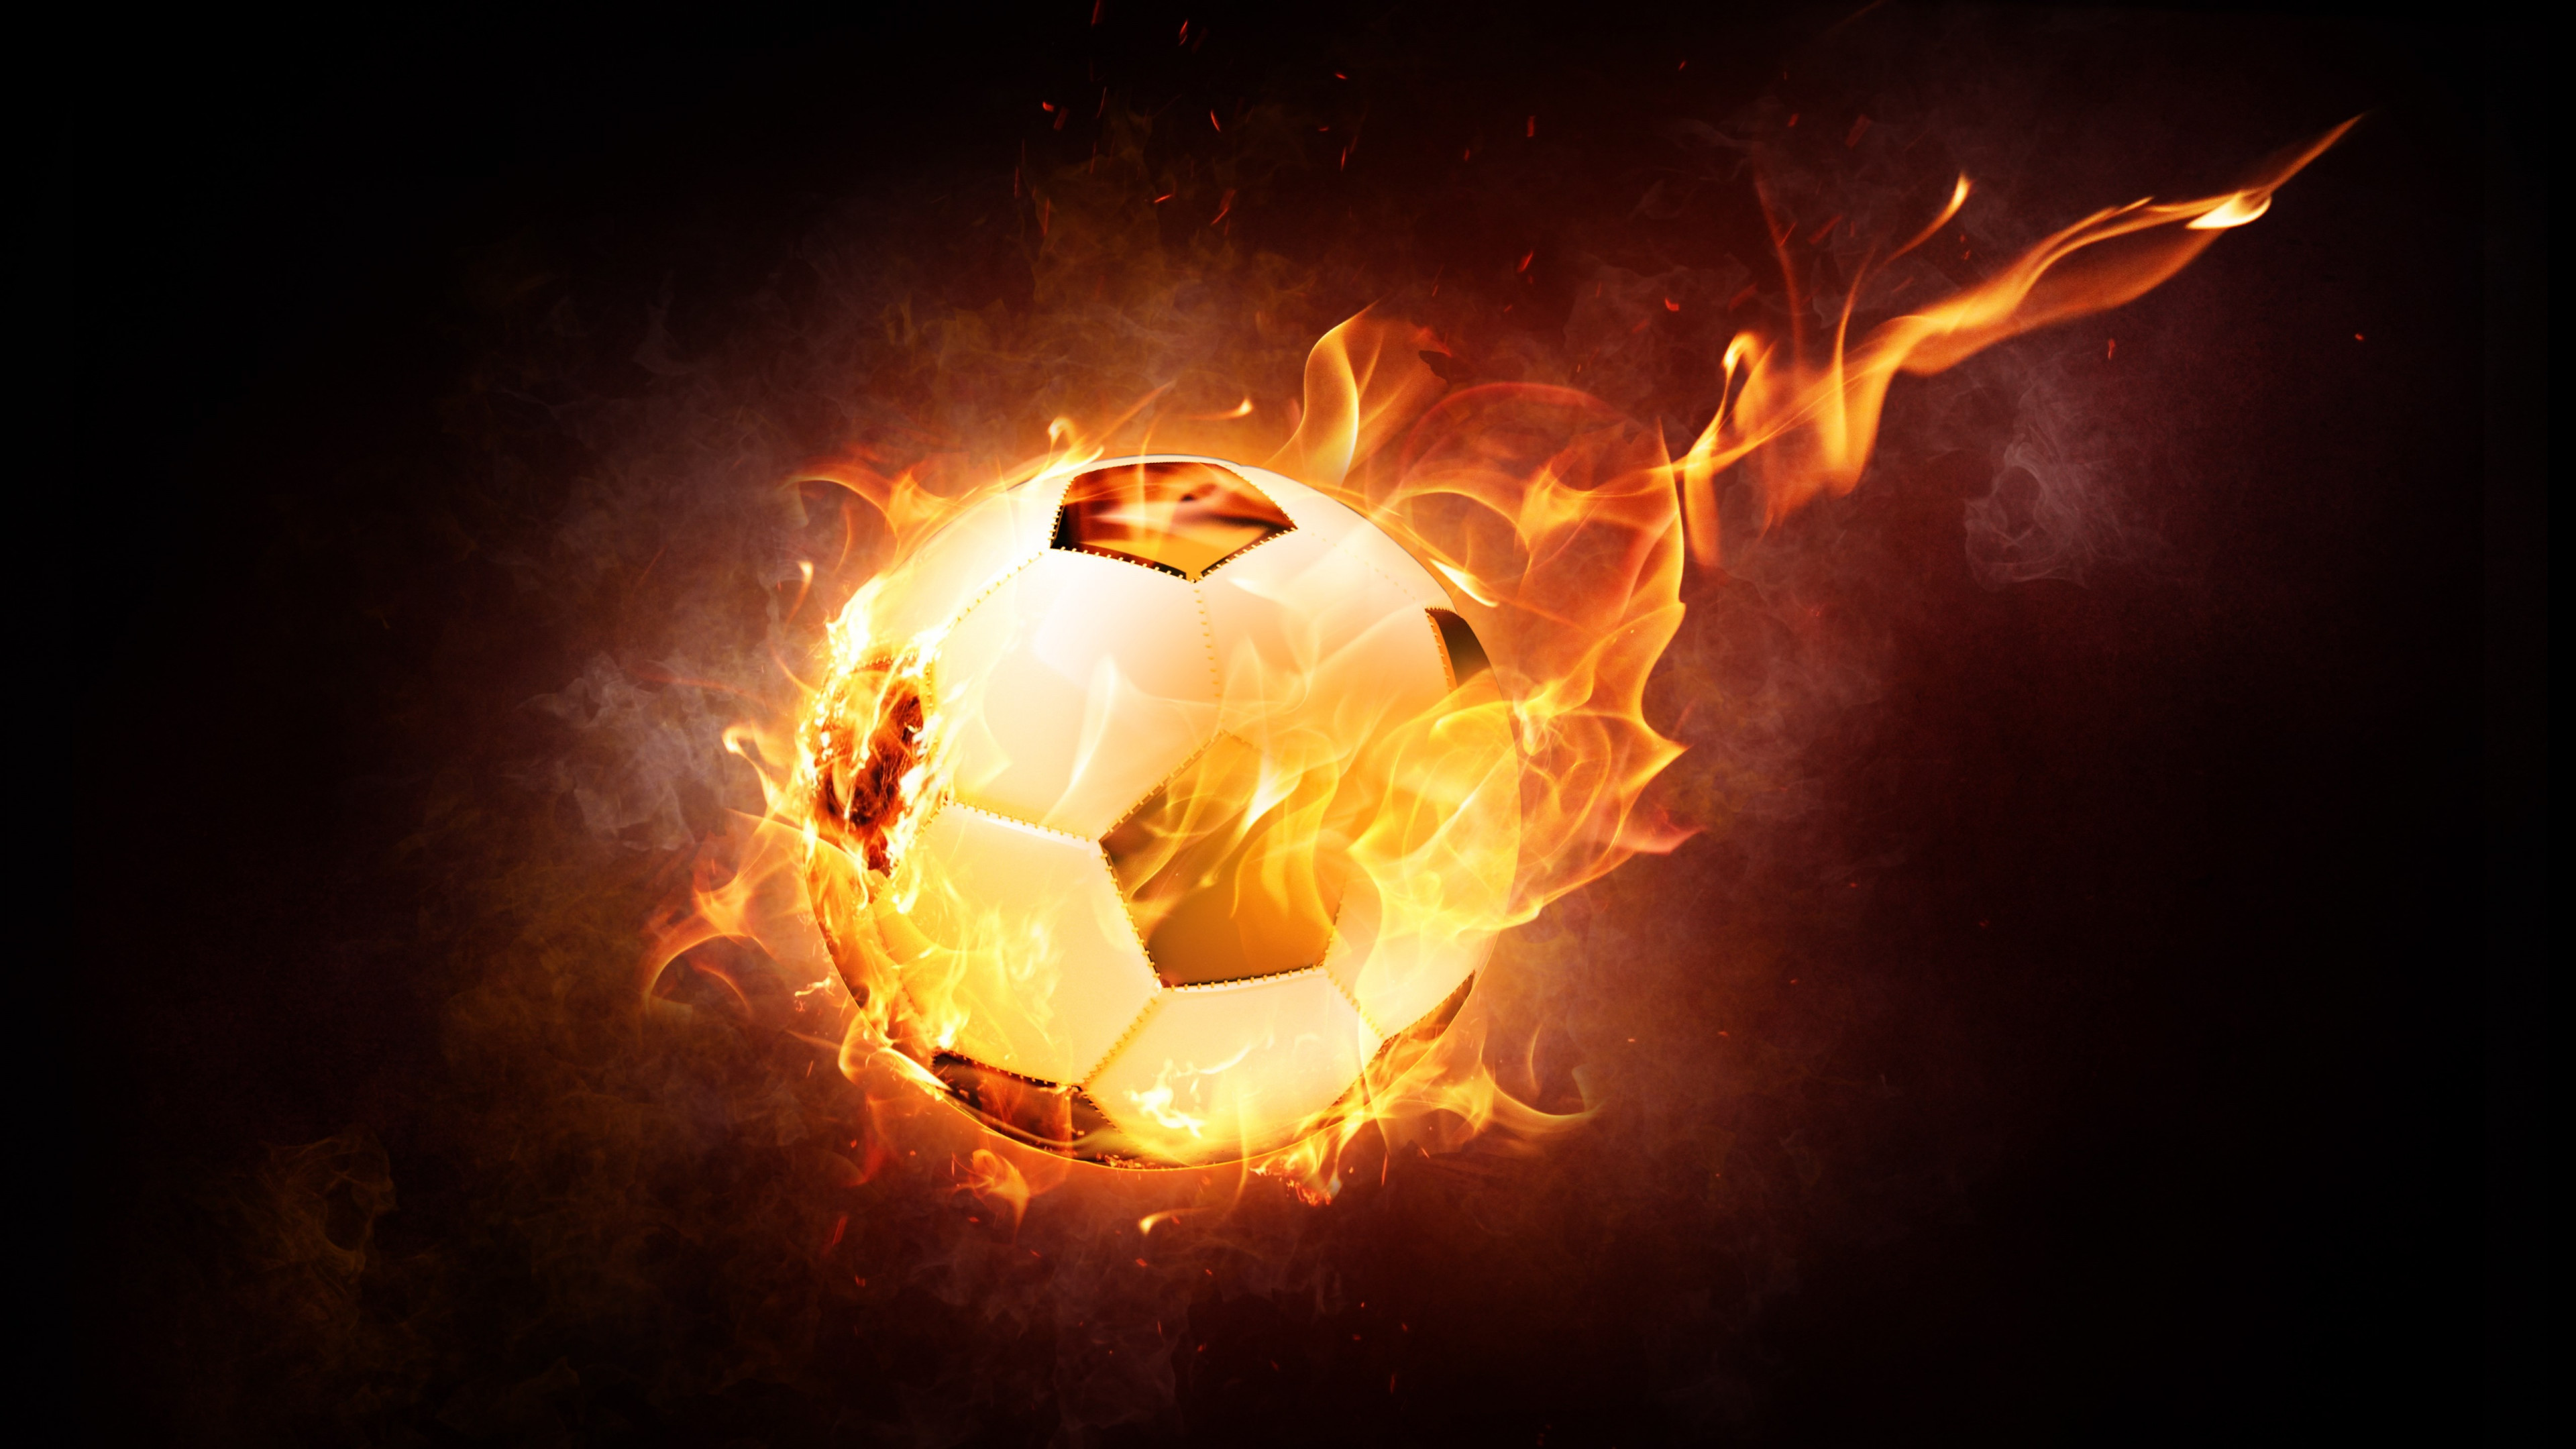 The football ball is on fire wallpaper 3840x2160